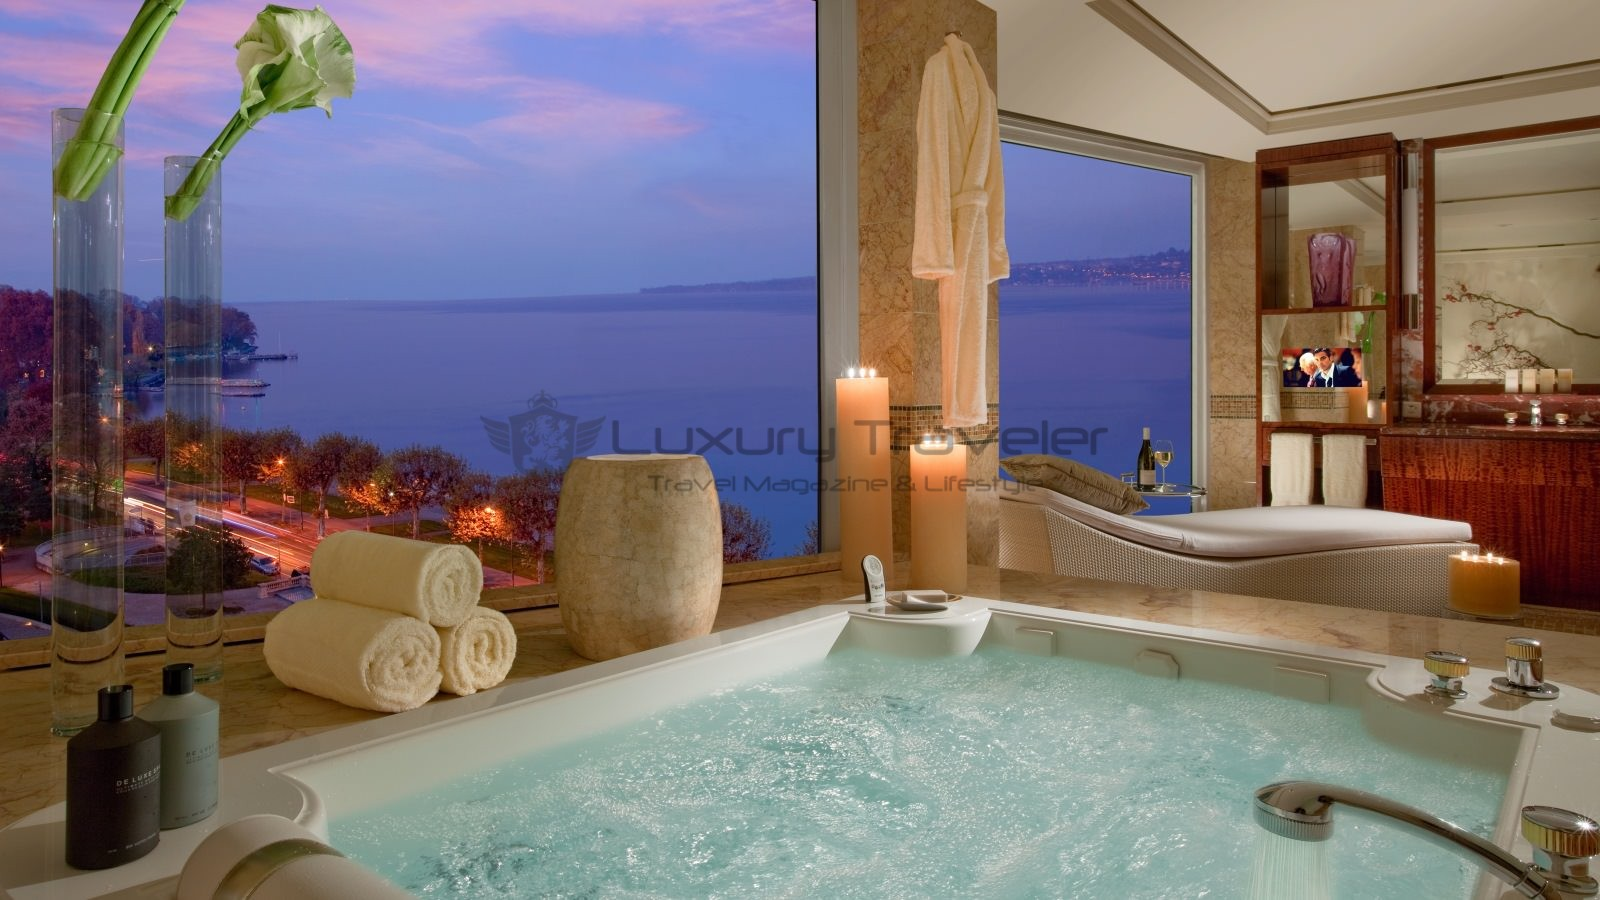 Most expensive bathrooms in the world - Hotel President Wilson Suite Bathroom_luxury